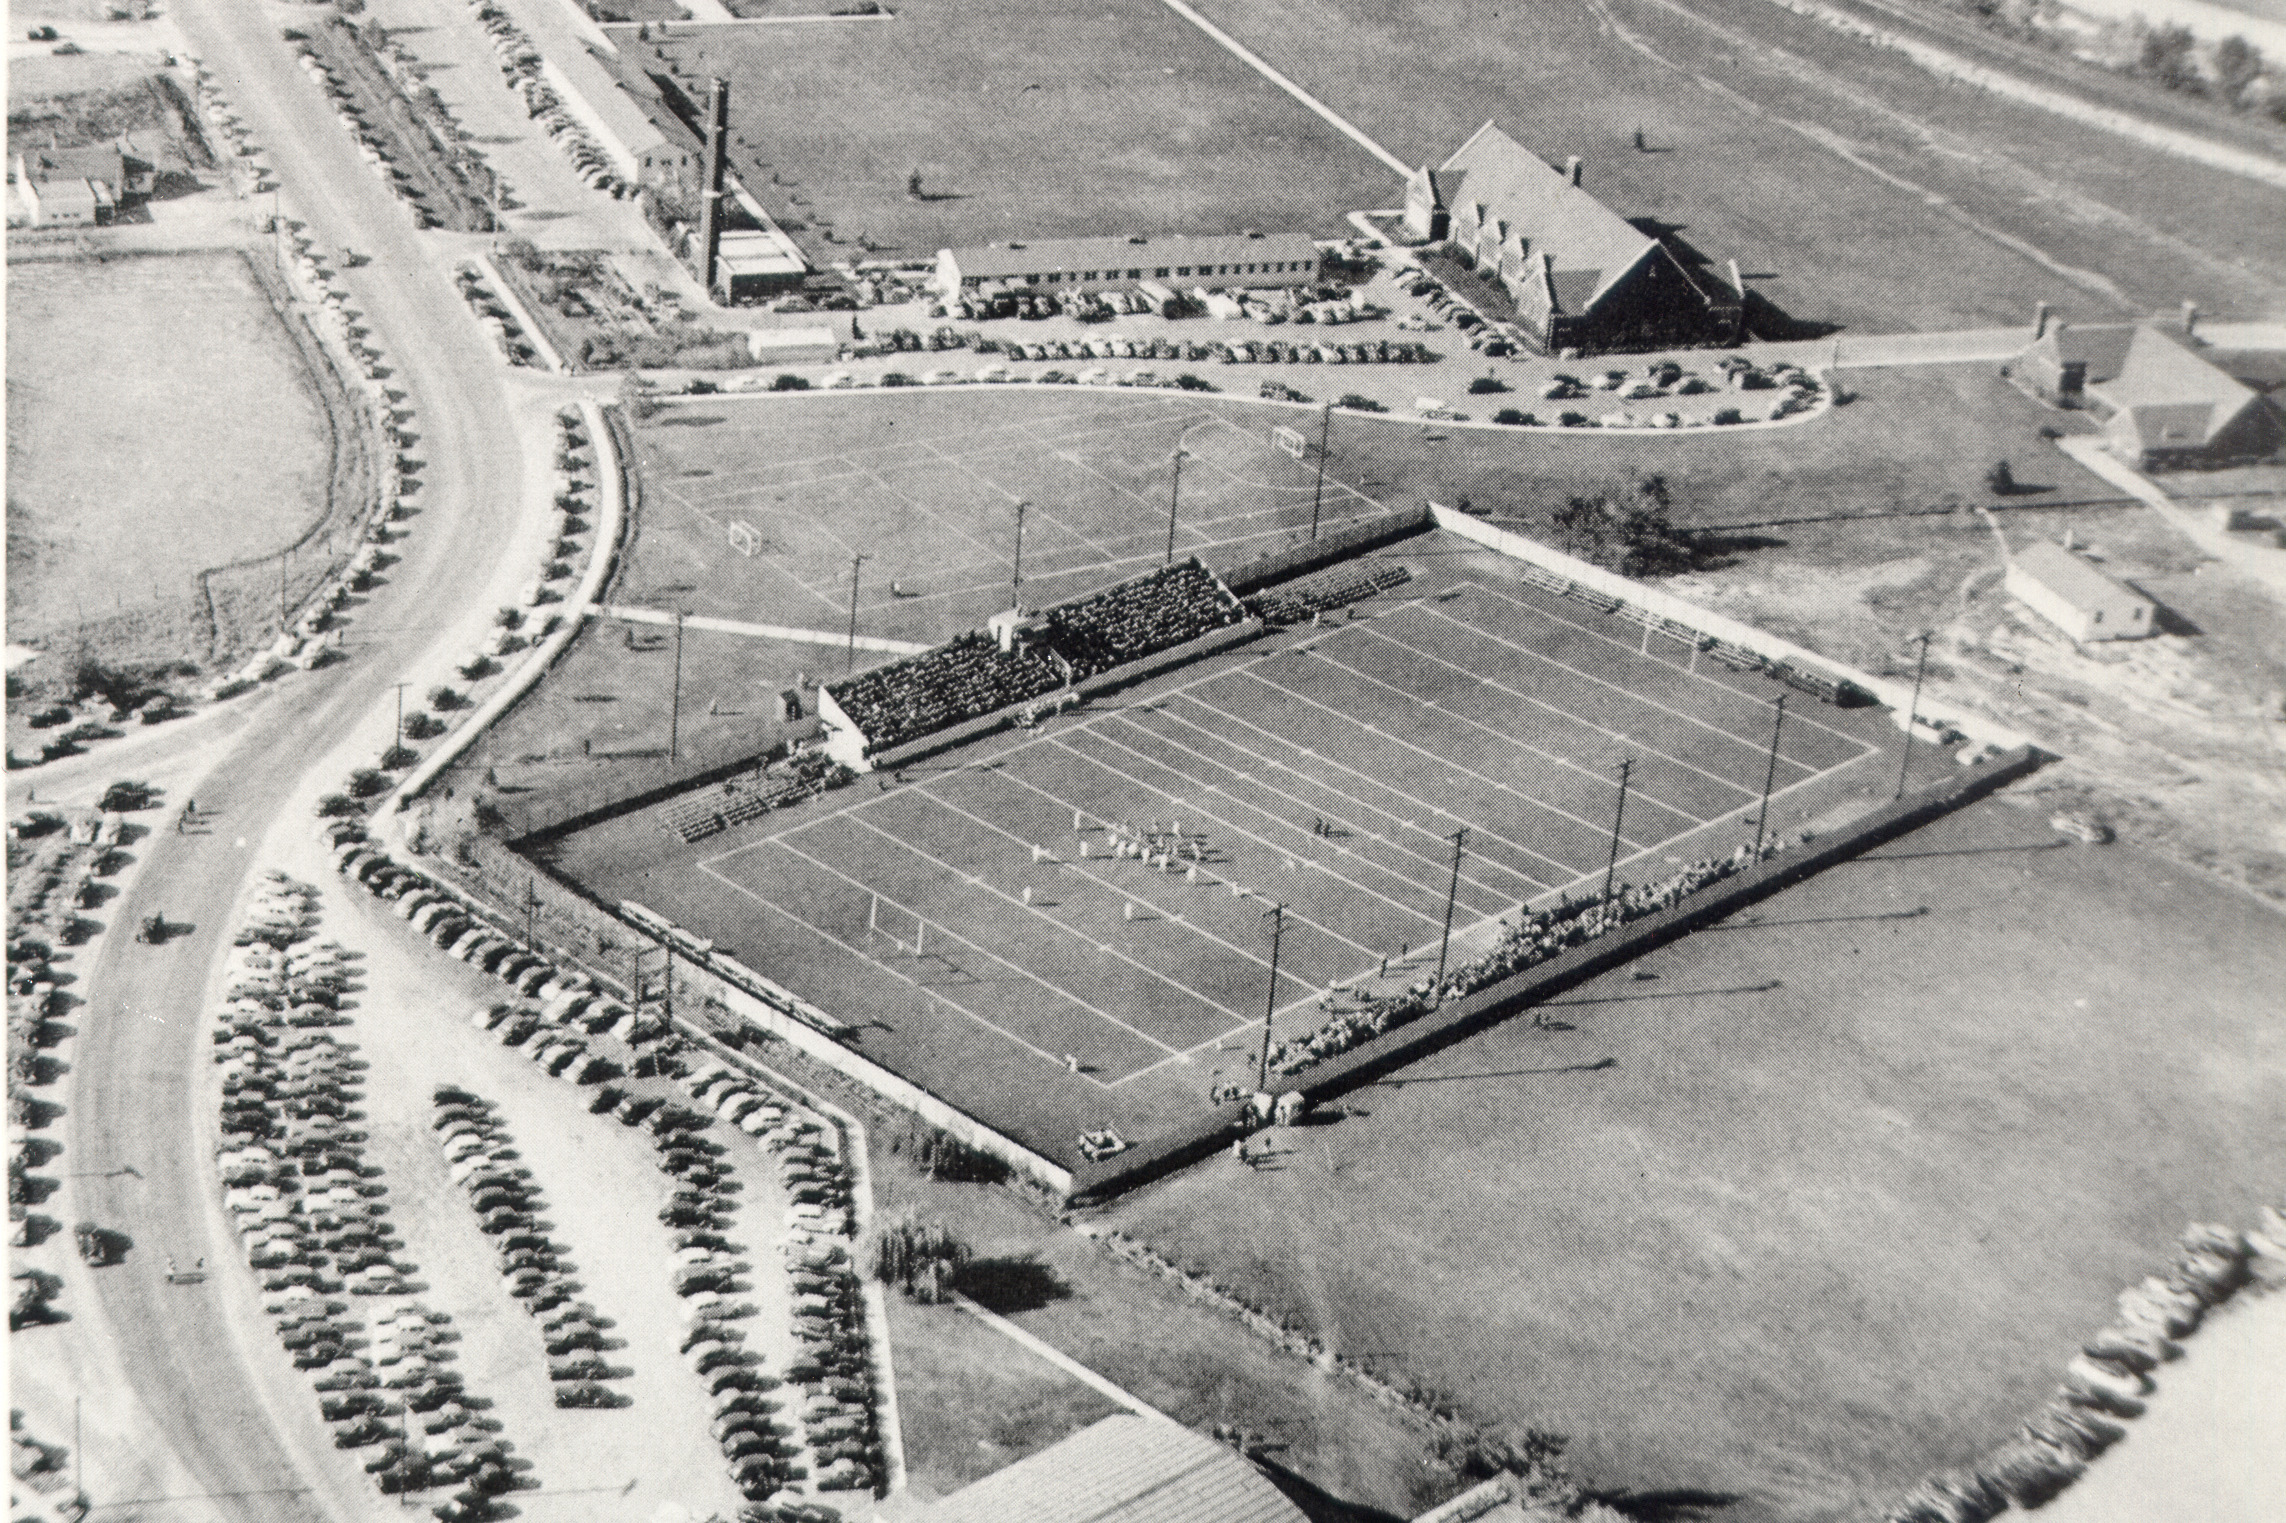 Aerial view of First field